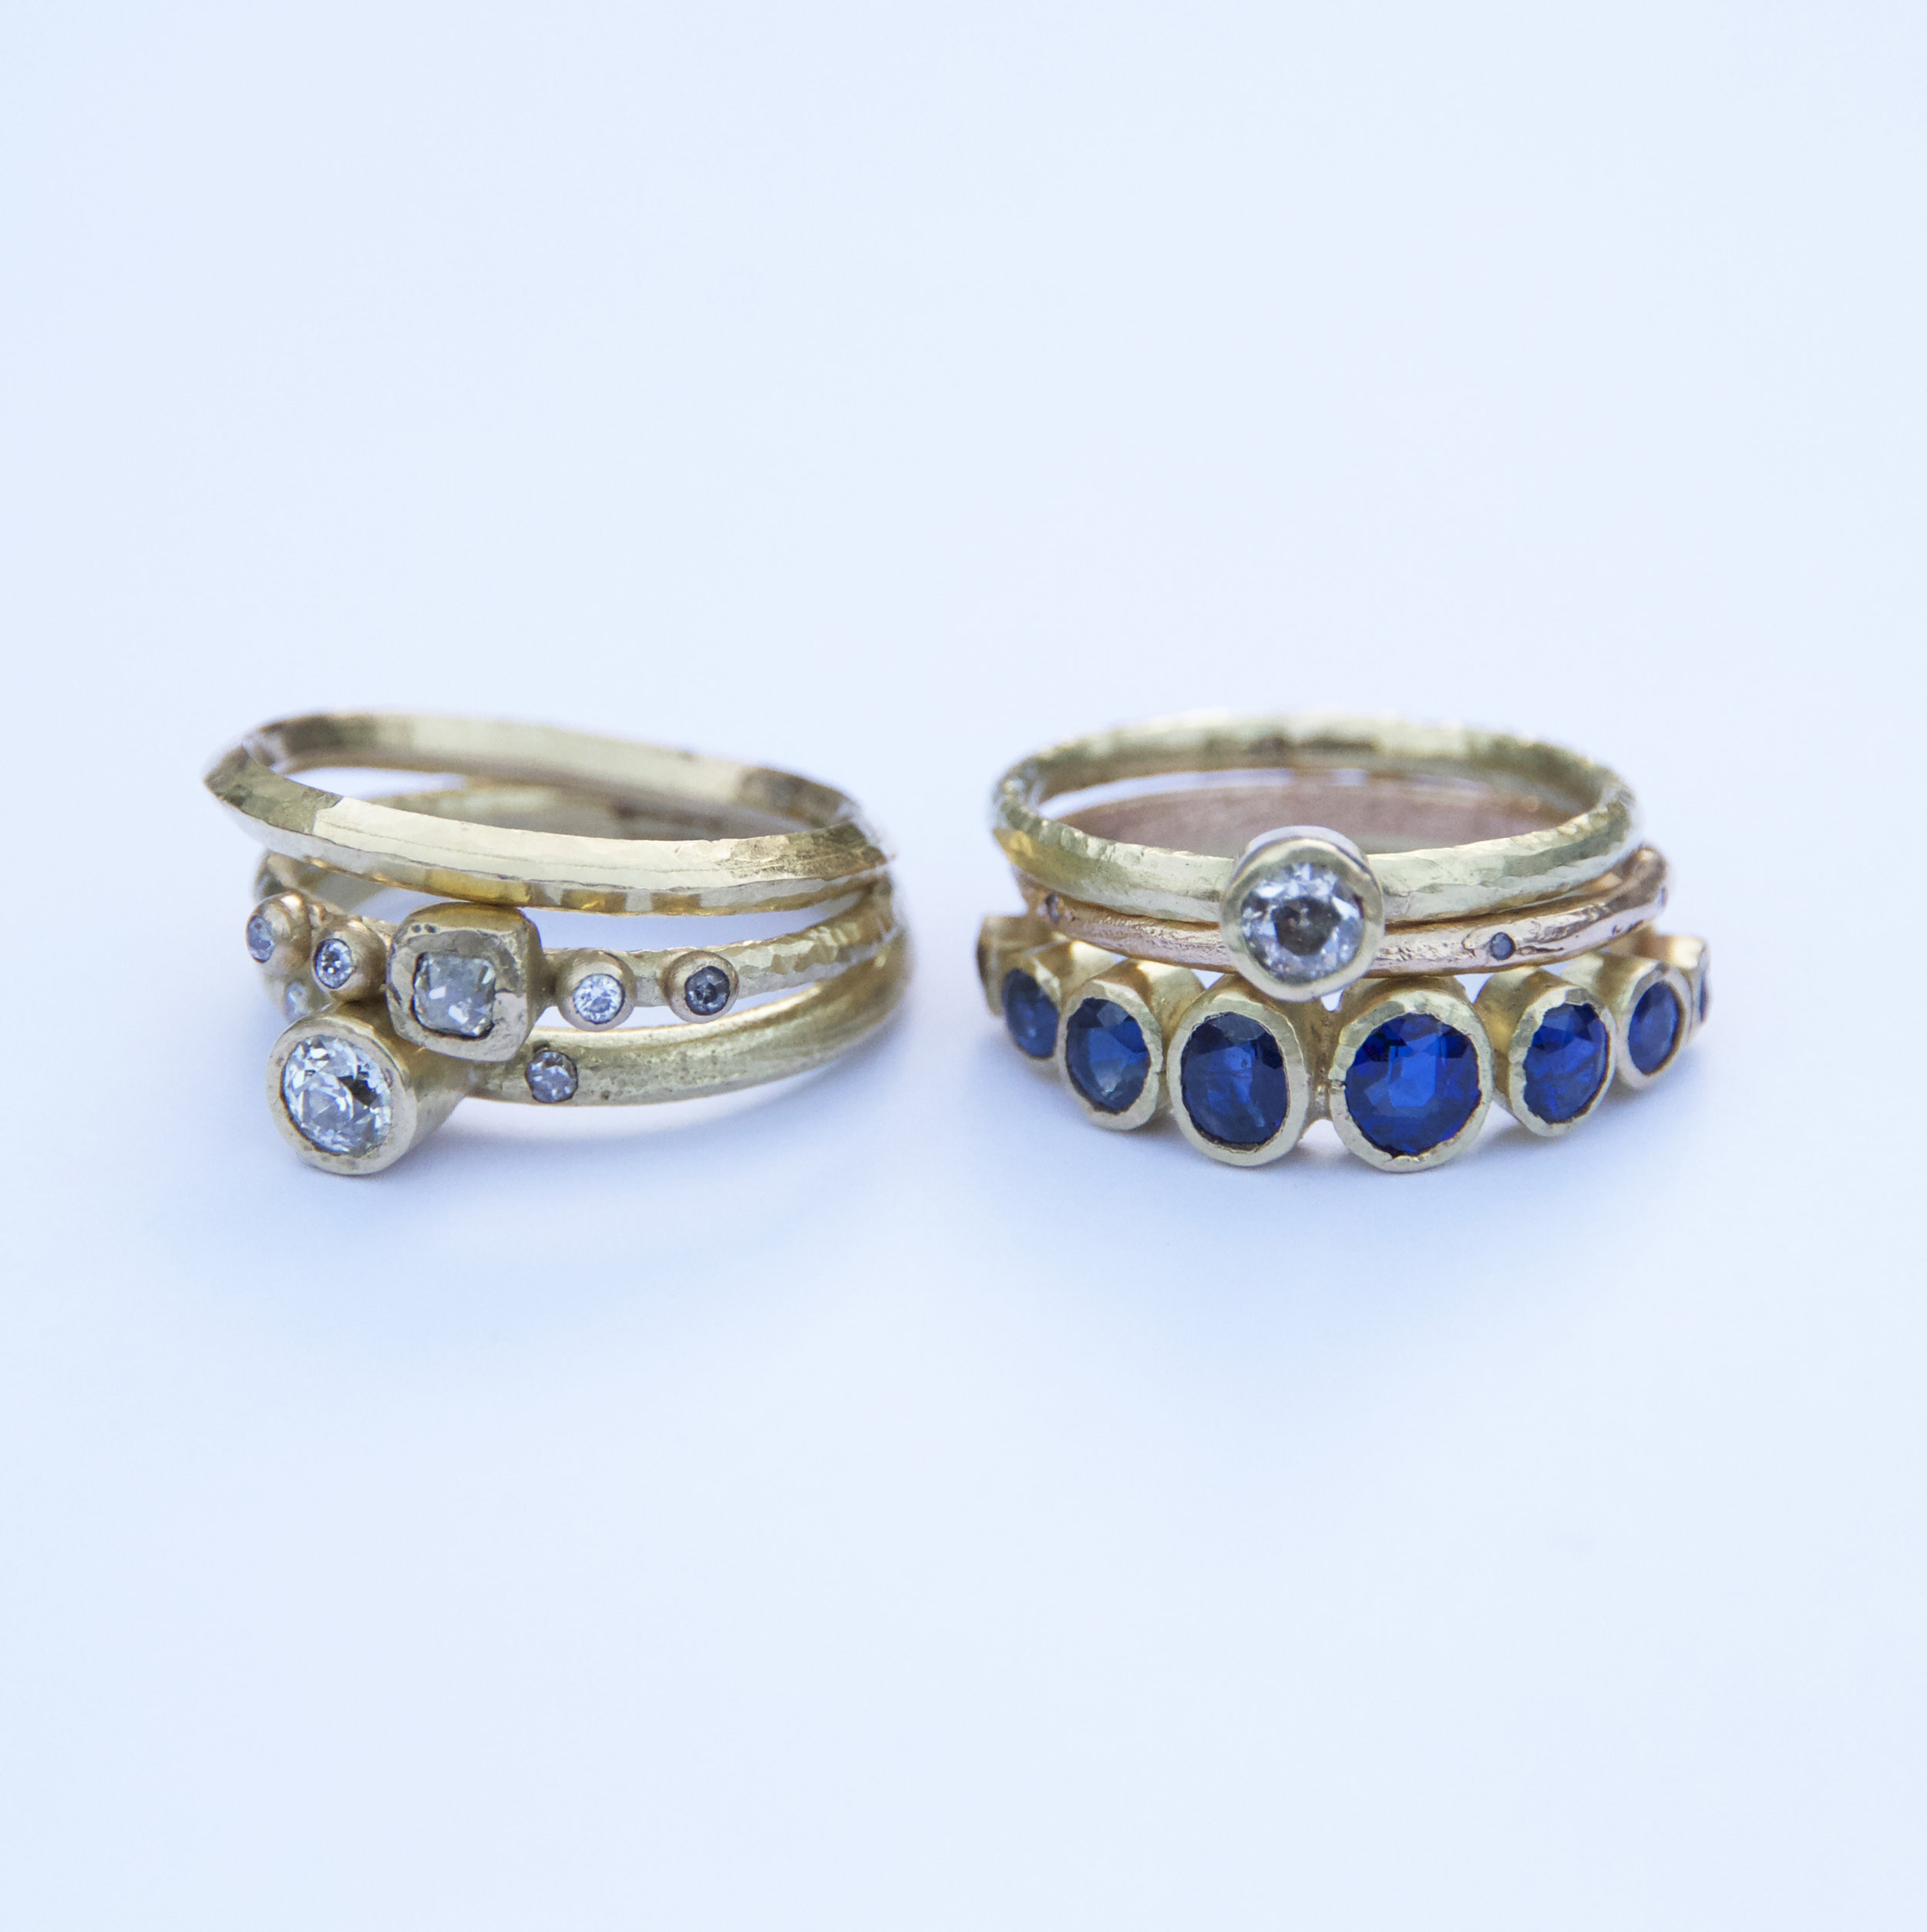 Recycled gold and vintage stone rings.  Bespoke  jewels.